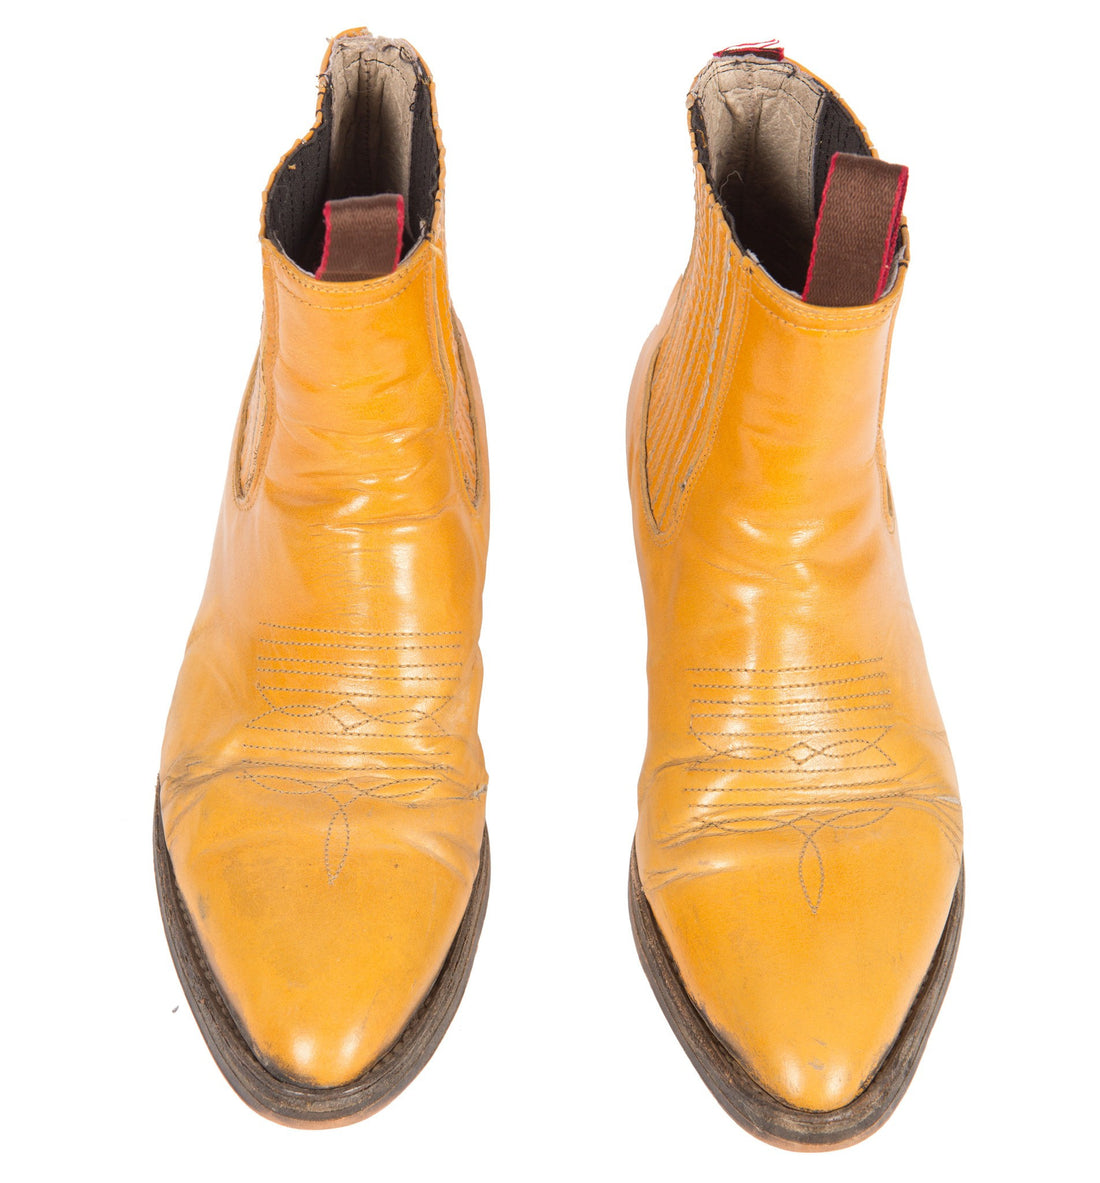 Vintage Mustard Chelsea Boots 9.5 - Vintage: Women's: Shoes - Iron and Resin